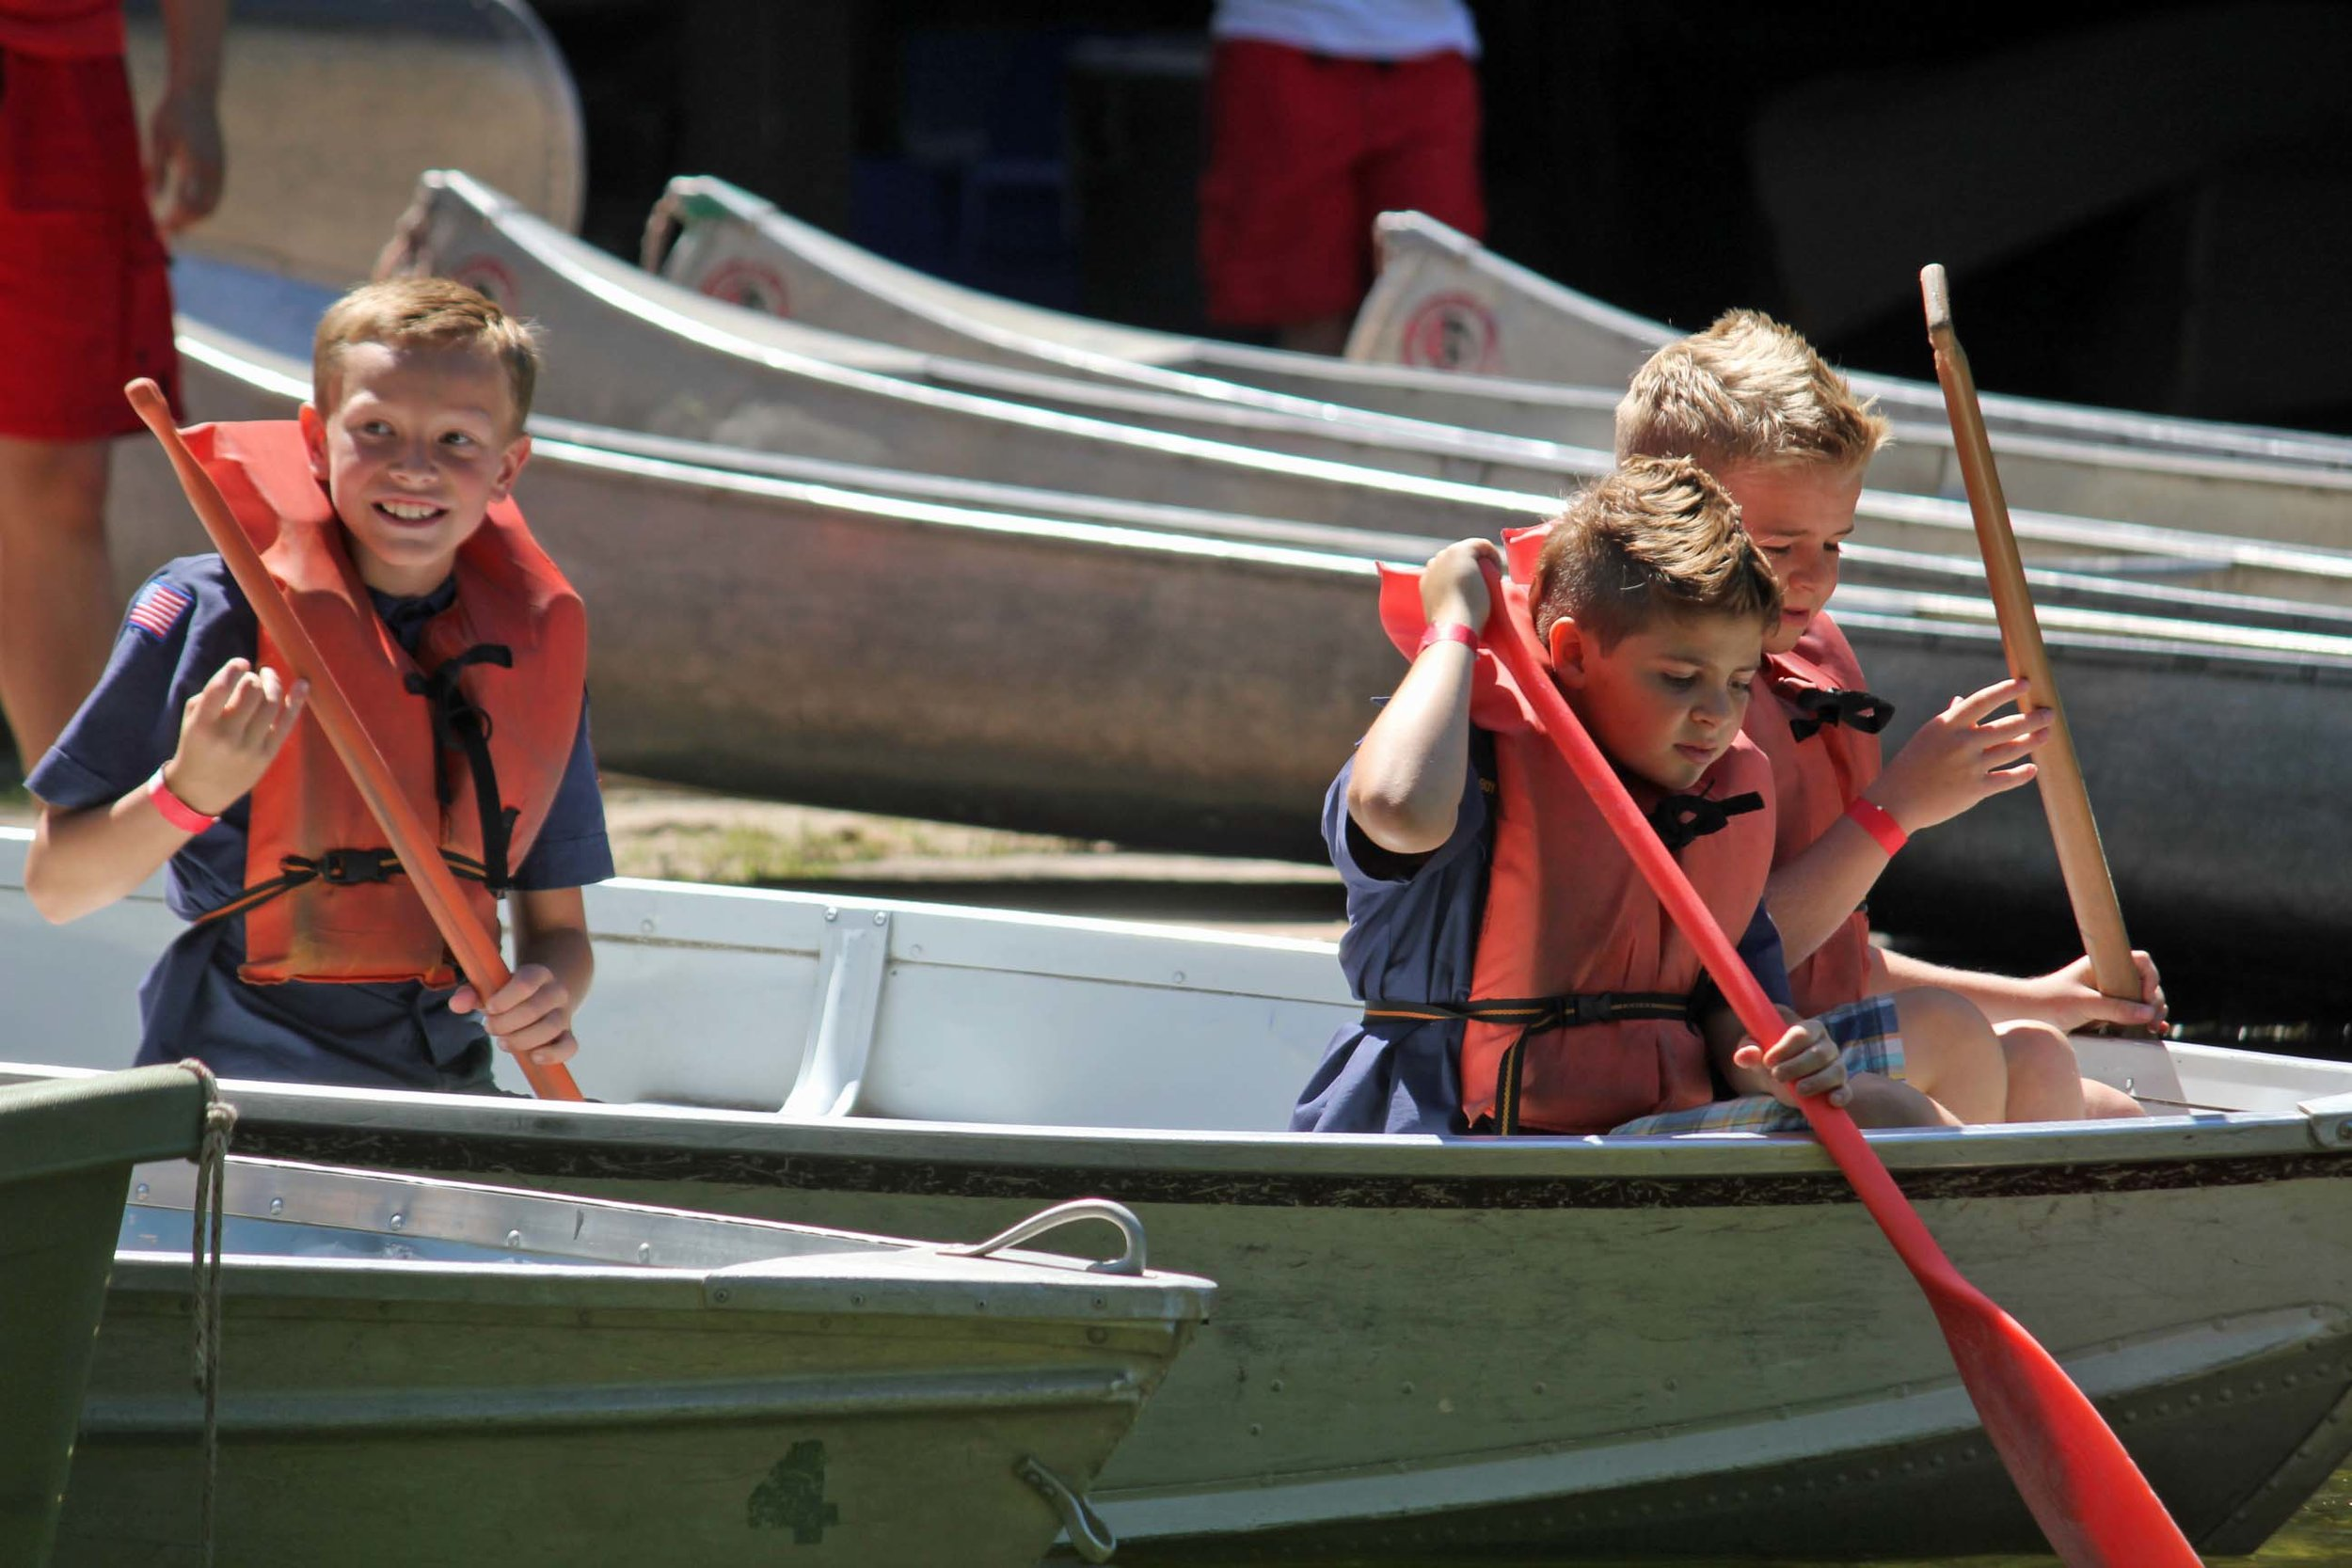 Cub Camp Row Boat.jpg